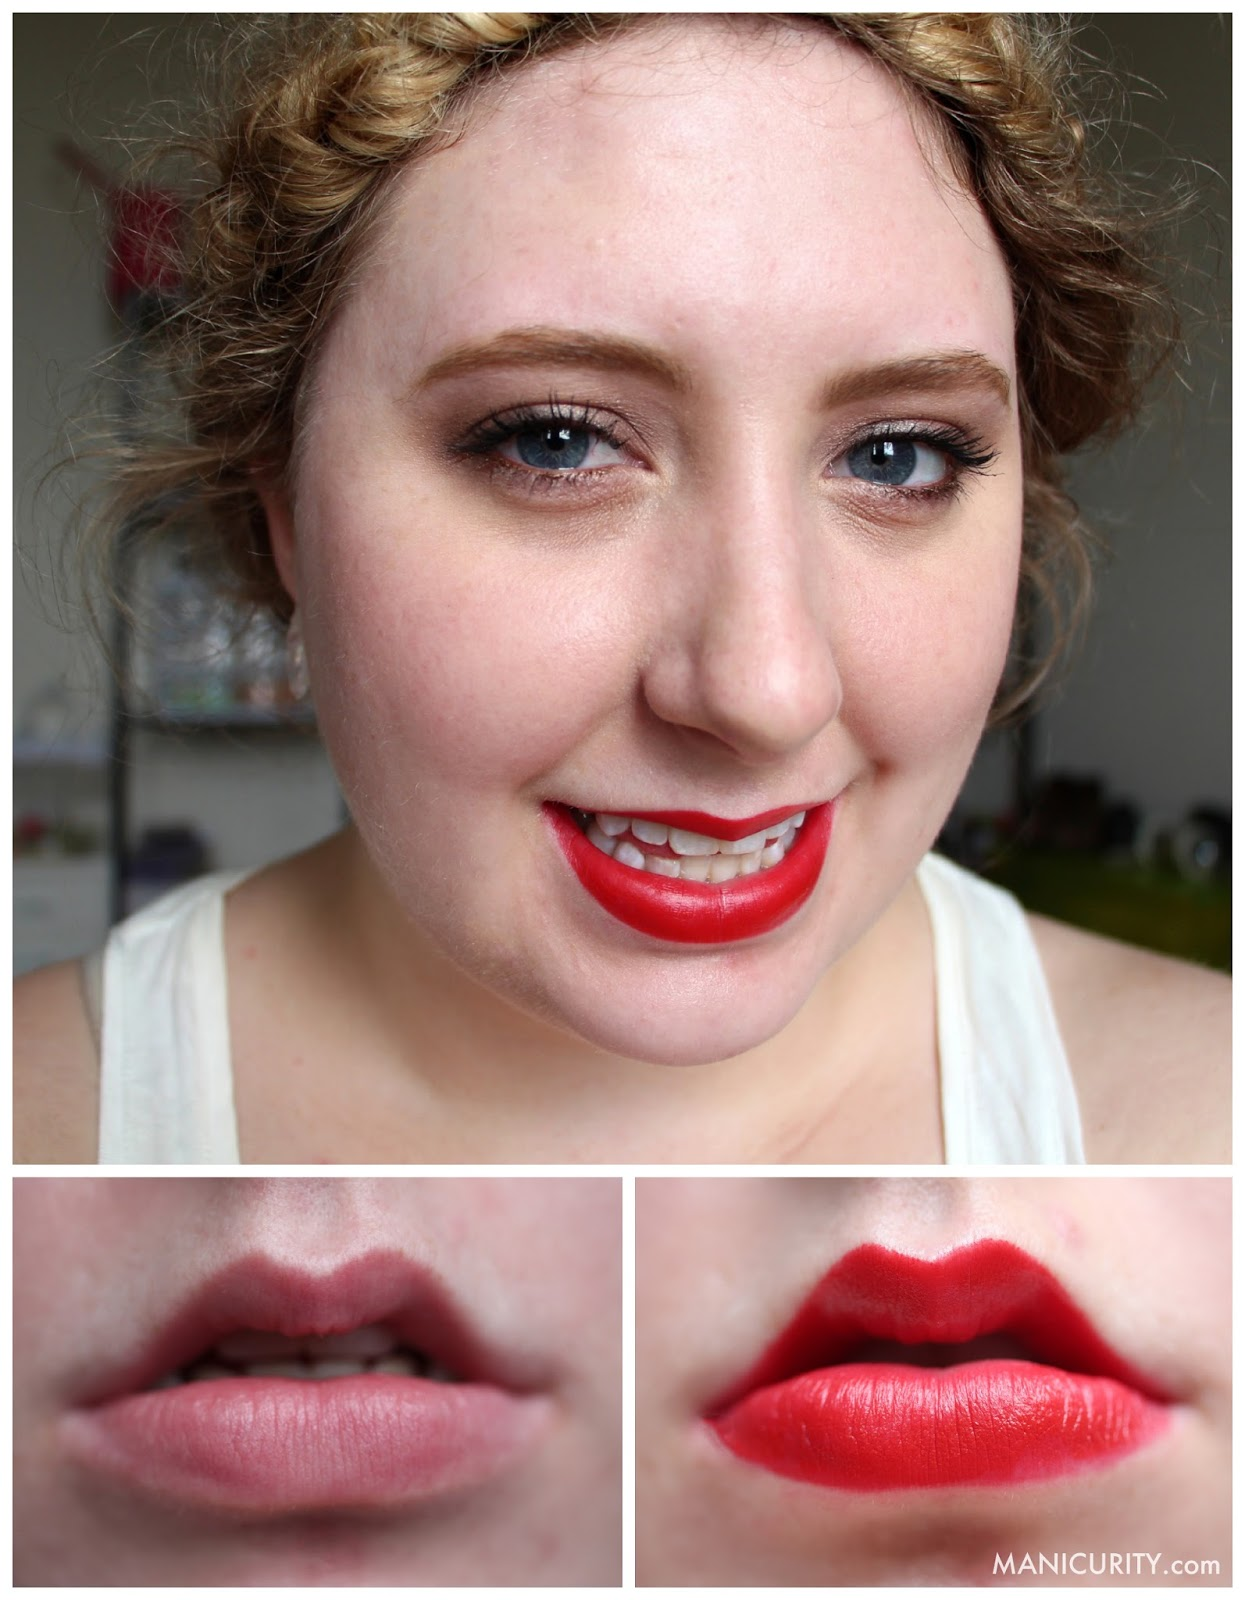 Manicurity - Ipsy Glam Bag December 2013 Hits & Misses | J.Cat Beauty The Big Lip Pencil Red Rose review, swatches, on lips